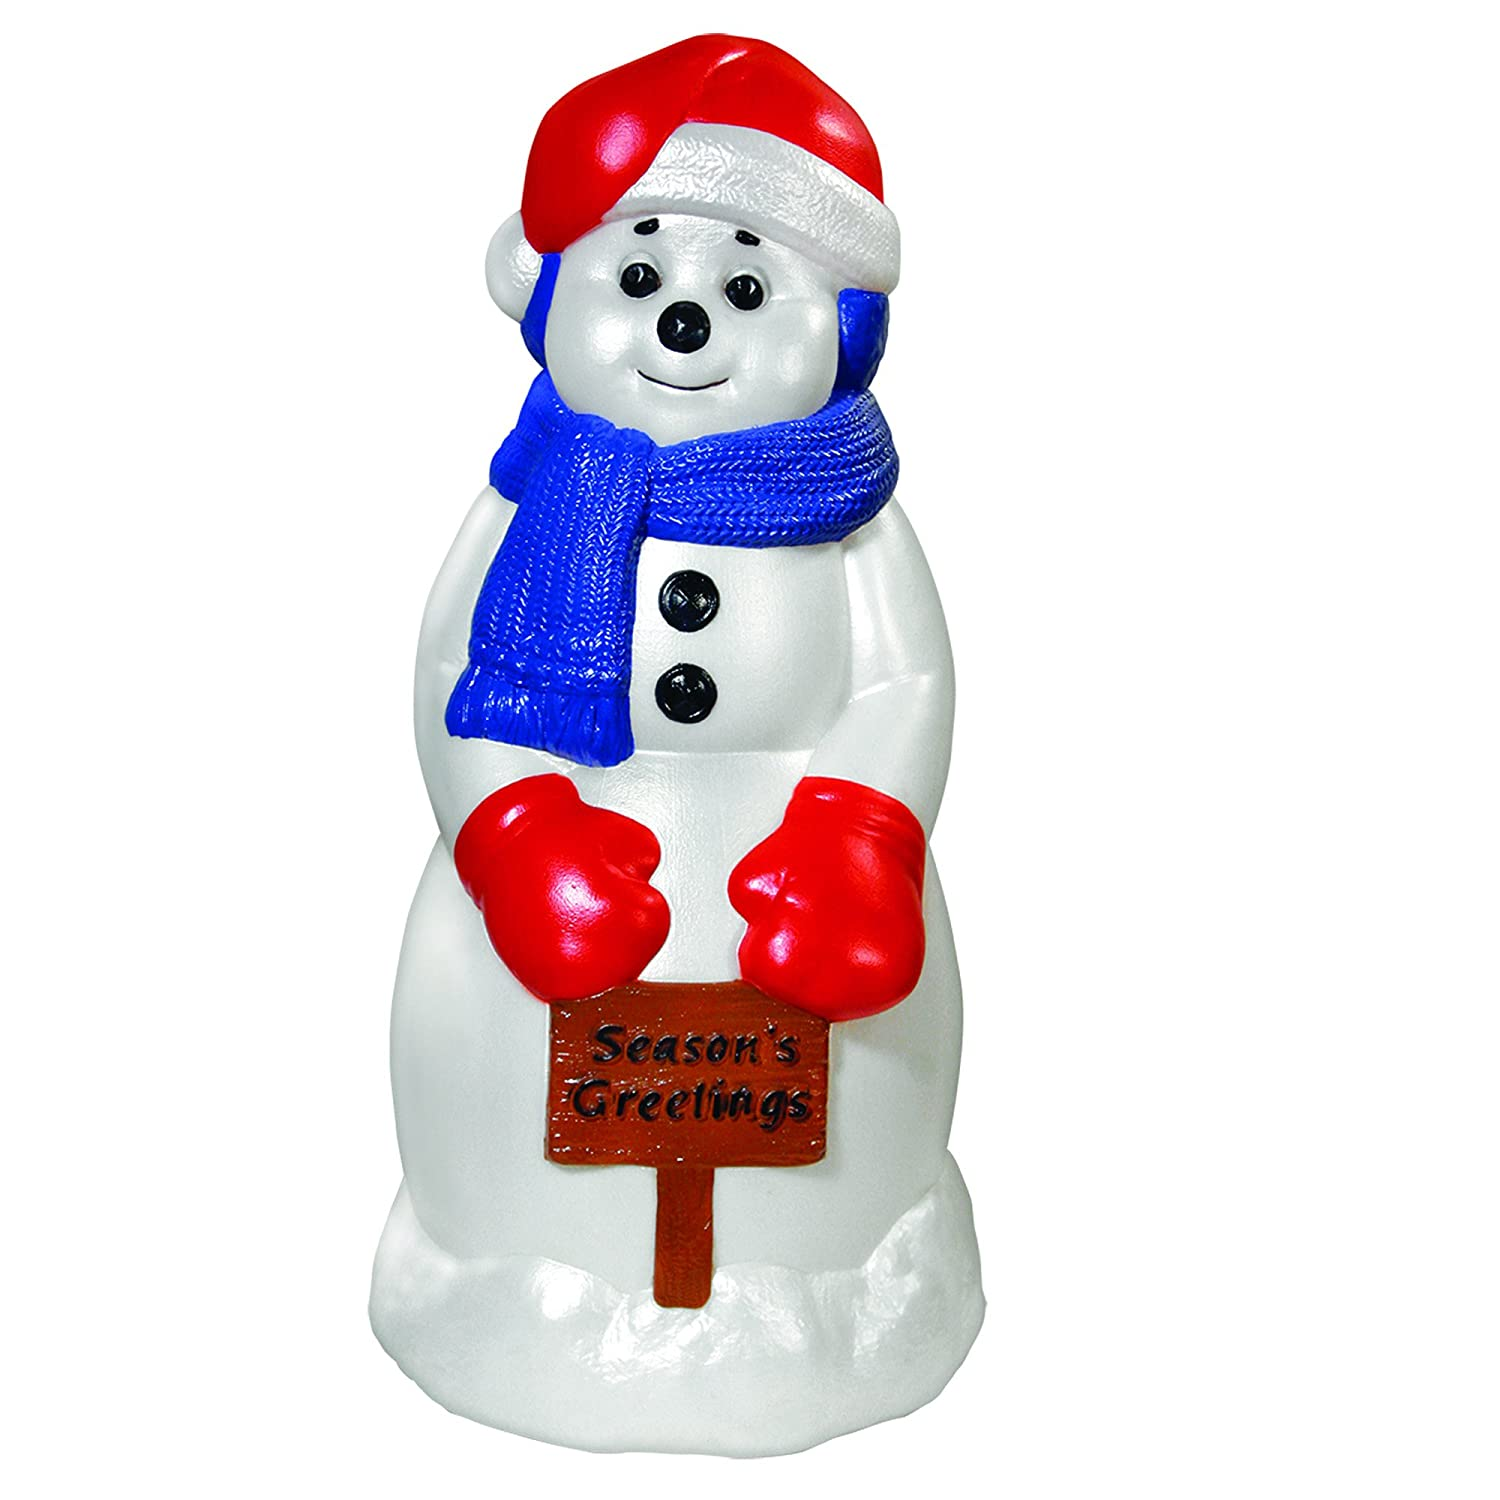 Lighted Snowman Outdoor Christmas Decorations Blow Mold Design Weather  Resistant Polyresin With Seasonu0027s Greetings Wording